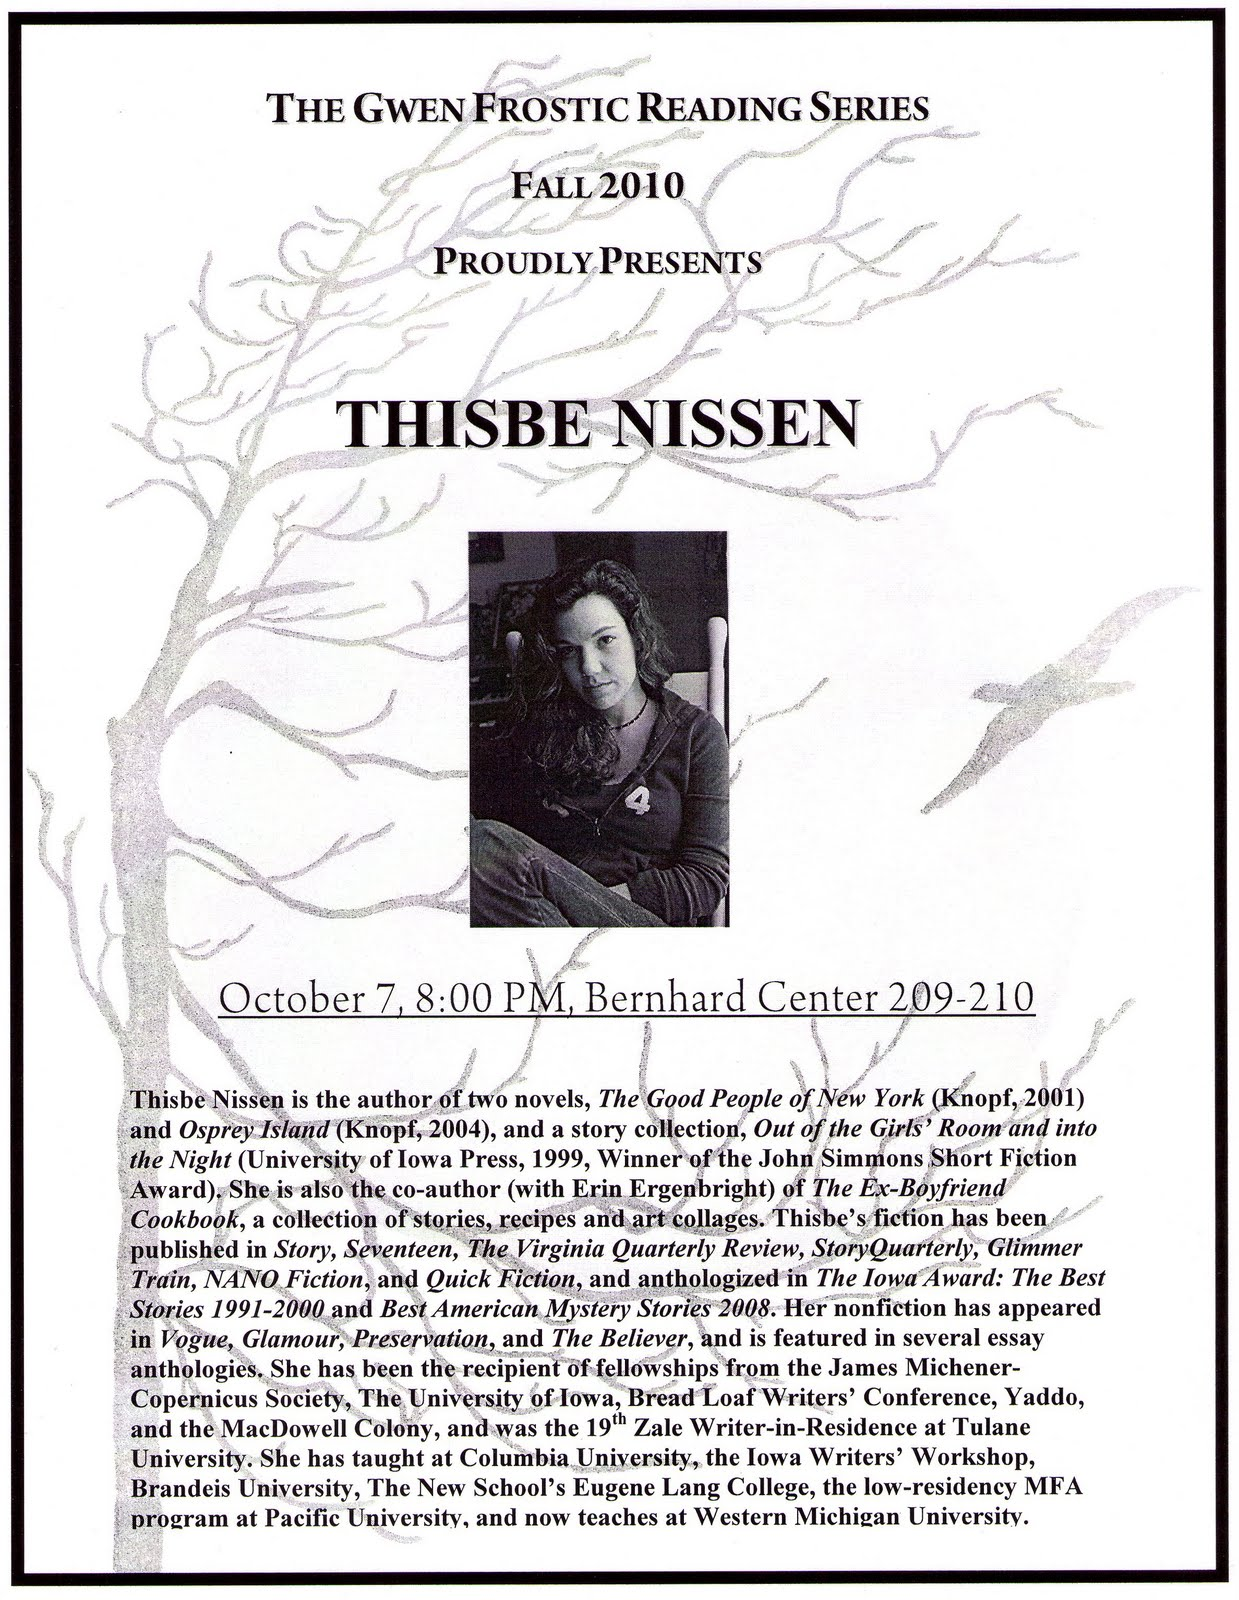 GLEANINGS: Thisbe Nissen Reads Her Work: Fall 2010 Gwen